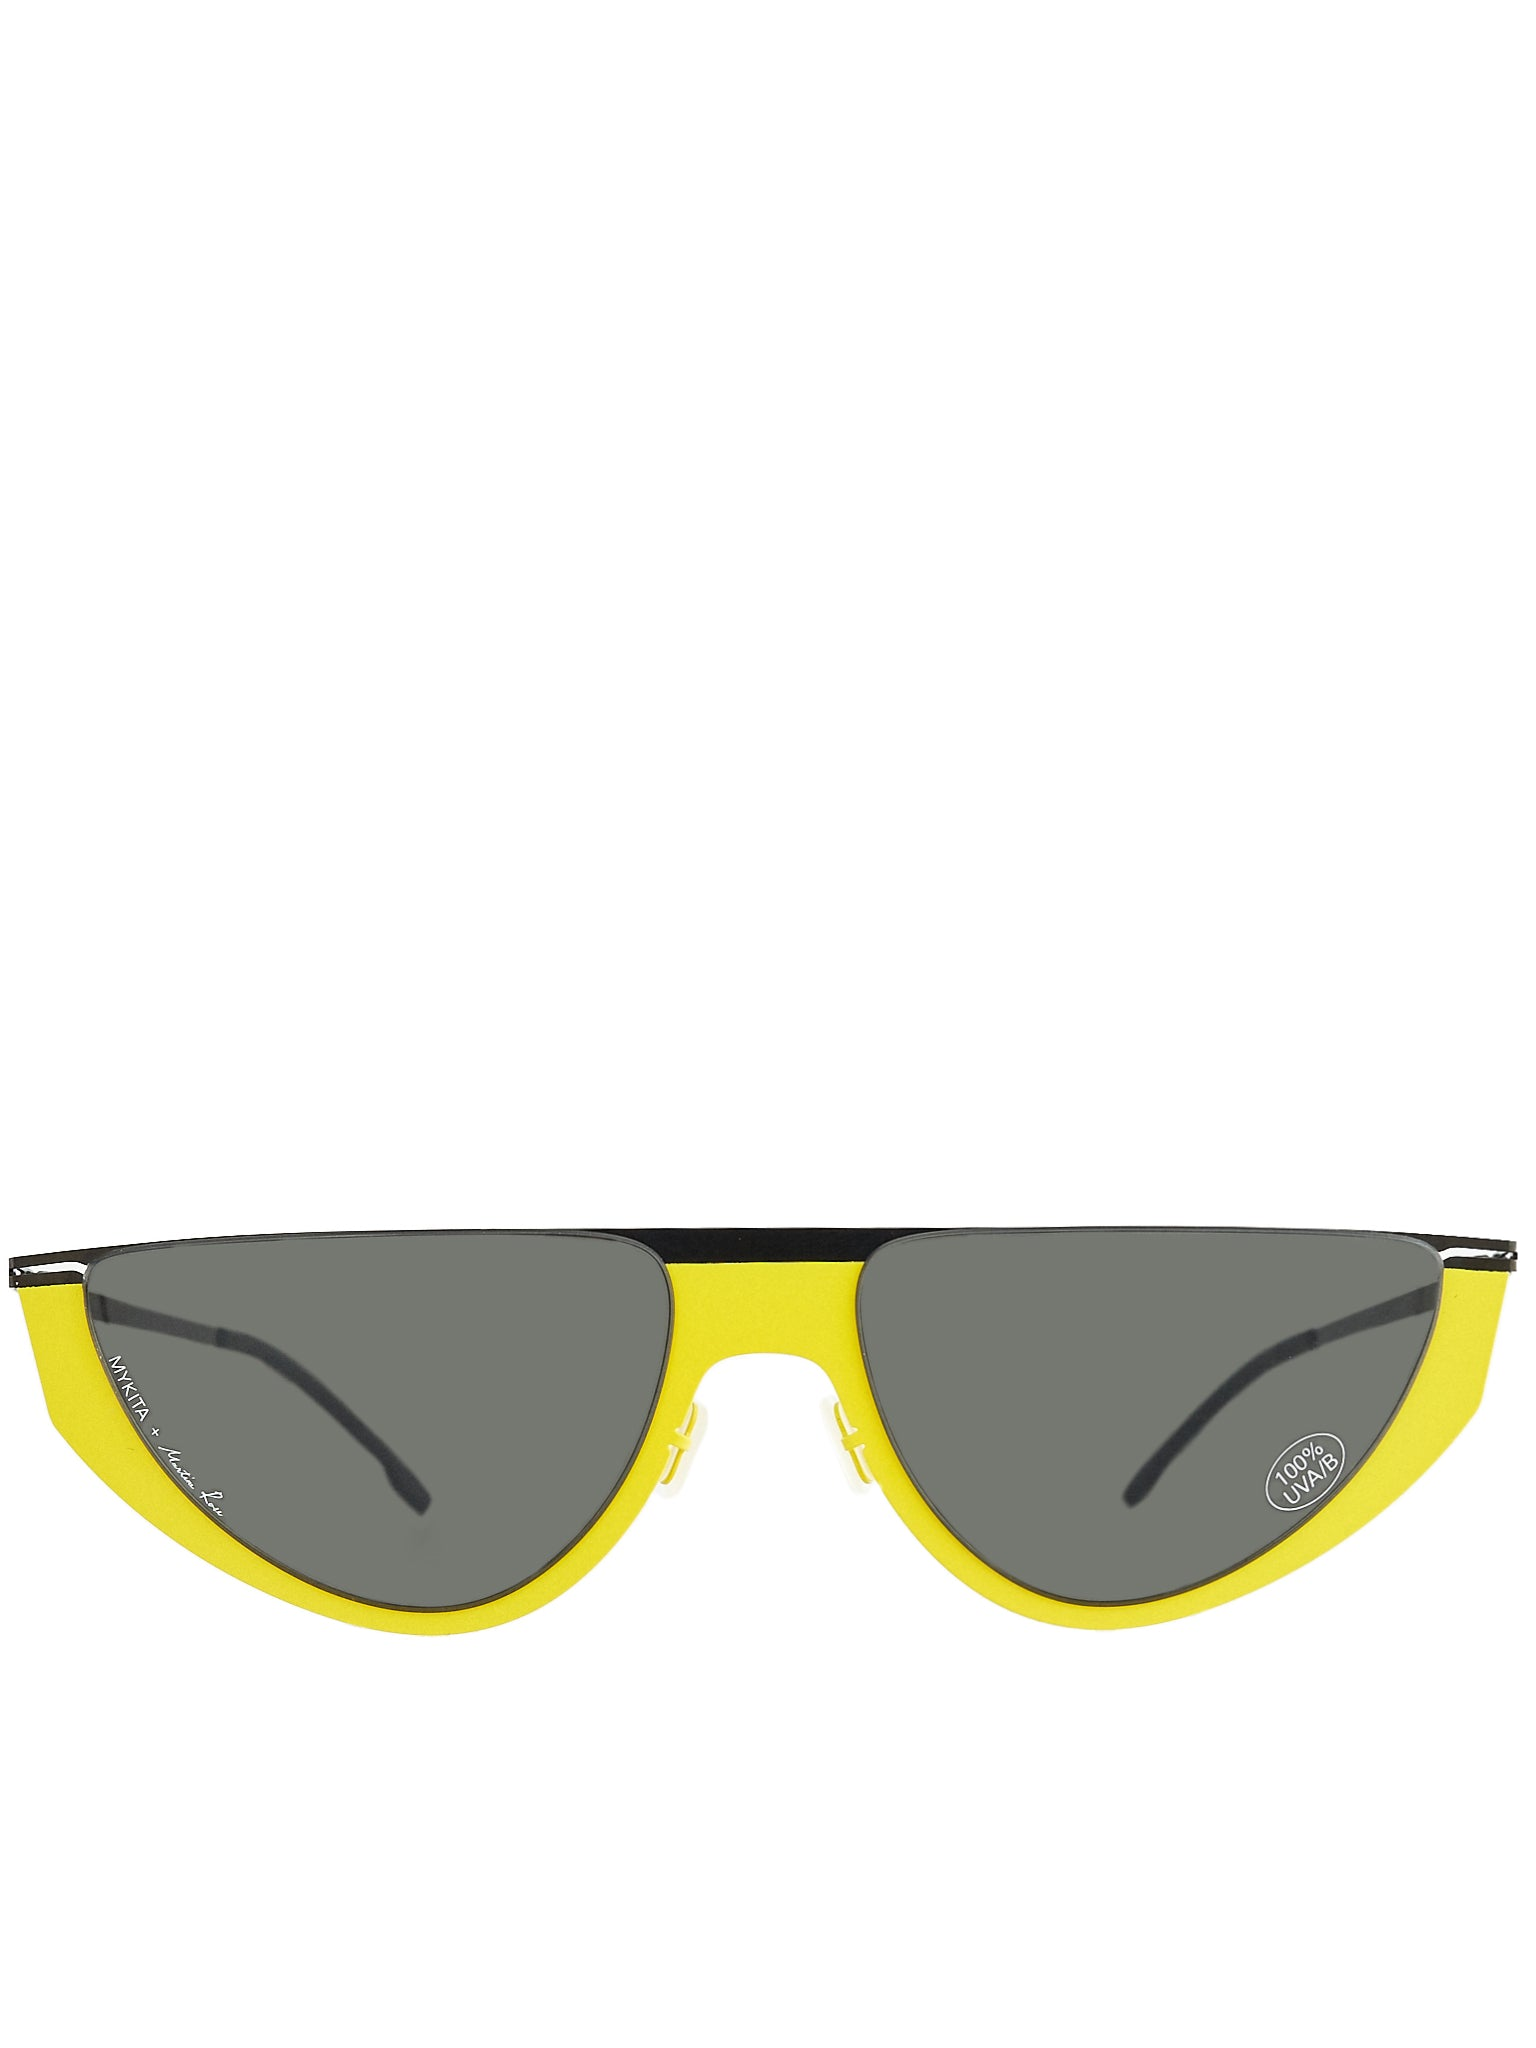 'Selina' Duotone Sunglasses (SELINA-BLACK-YELLOW-DARKGREY)